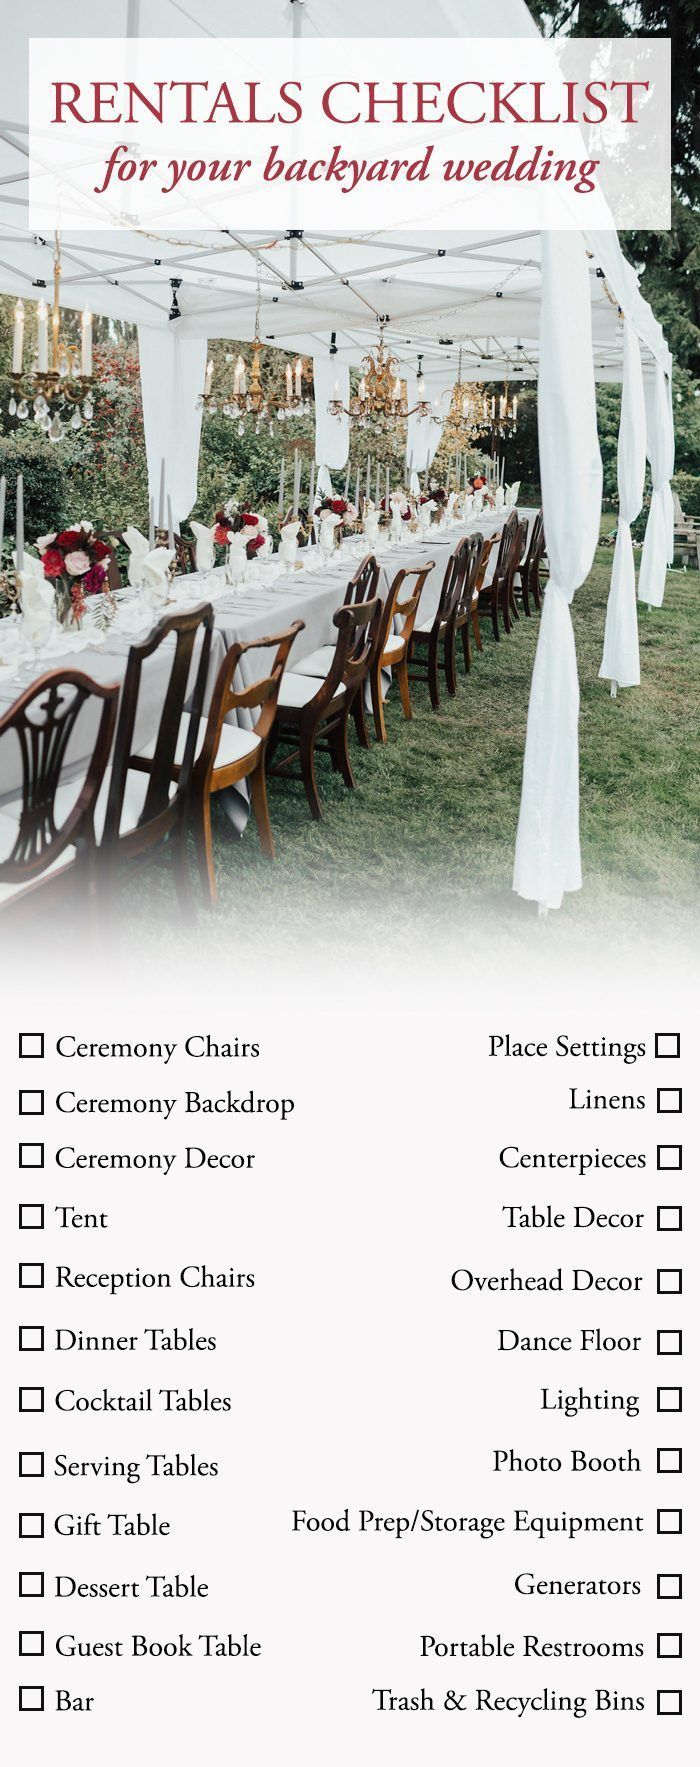 The Ultimate Guide to Planning a Backyard Wedding | Future ...